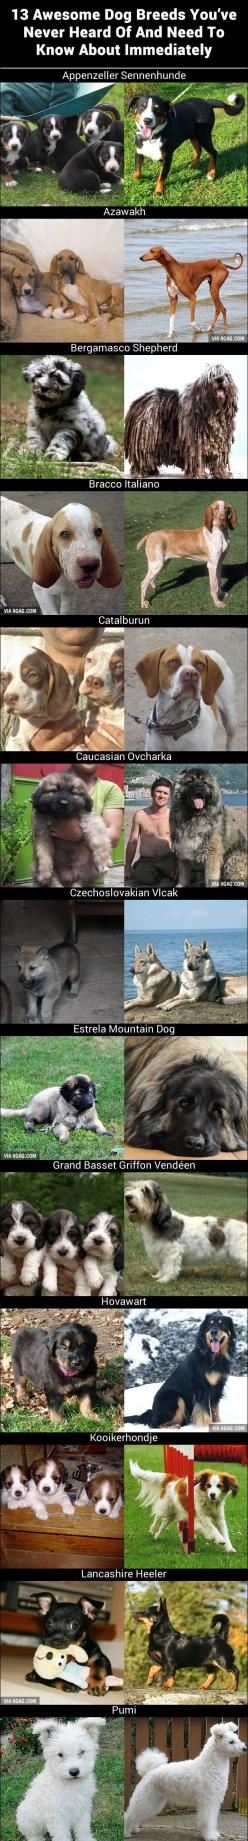 13 Awesome Dog Breeds You've Never Heard Of: Awesome Dogs, Animals, 13 Awesome, Heard, Breeds You Ve, 13 Dog, List Of Dog Breeds